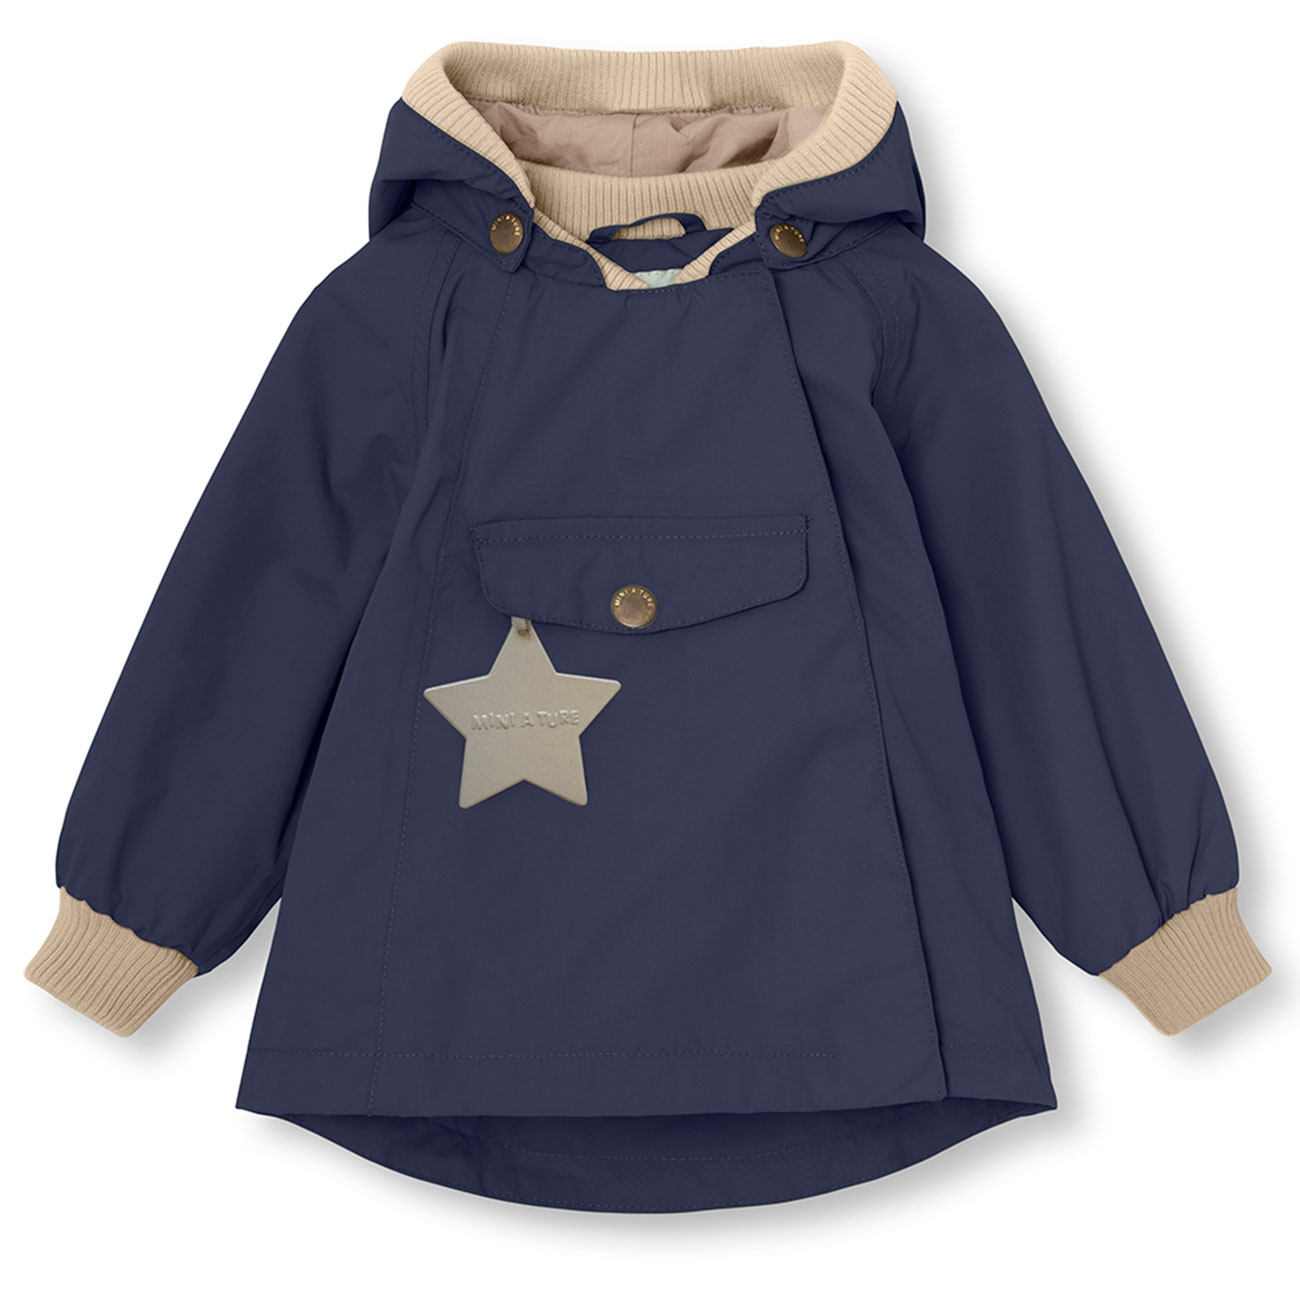 mini-a-ture-jacket-jakke-wai-cloudy-maritime-blue